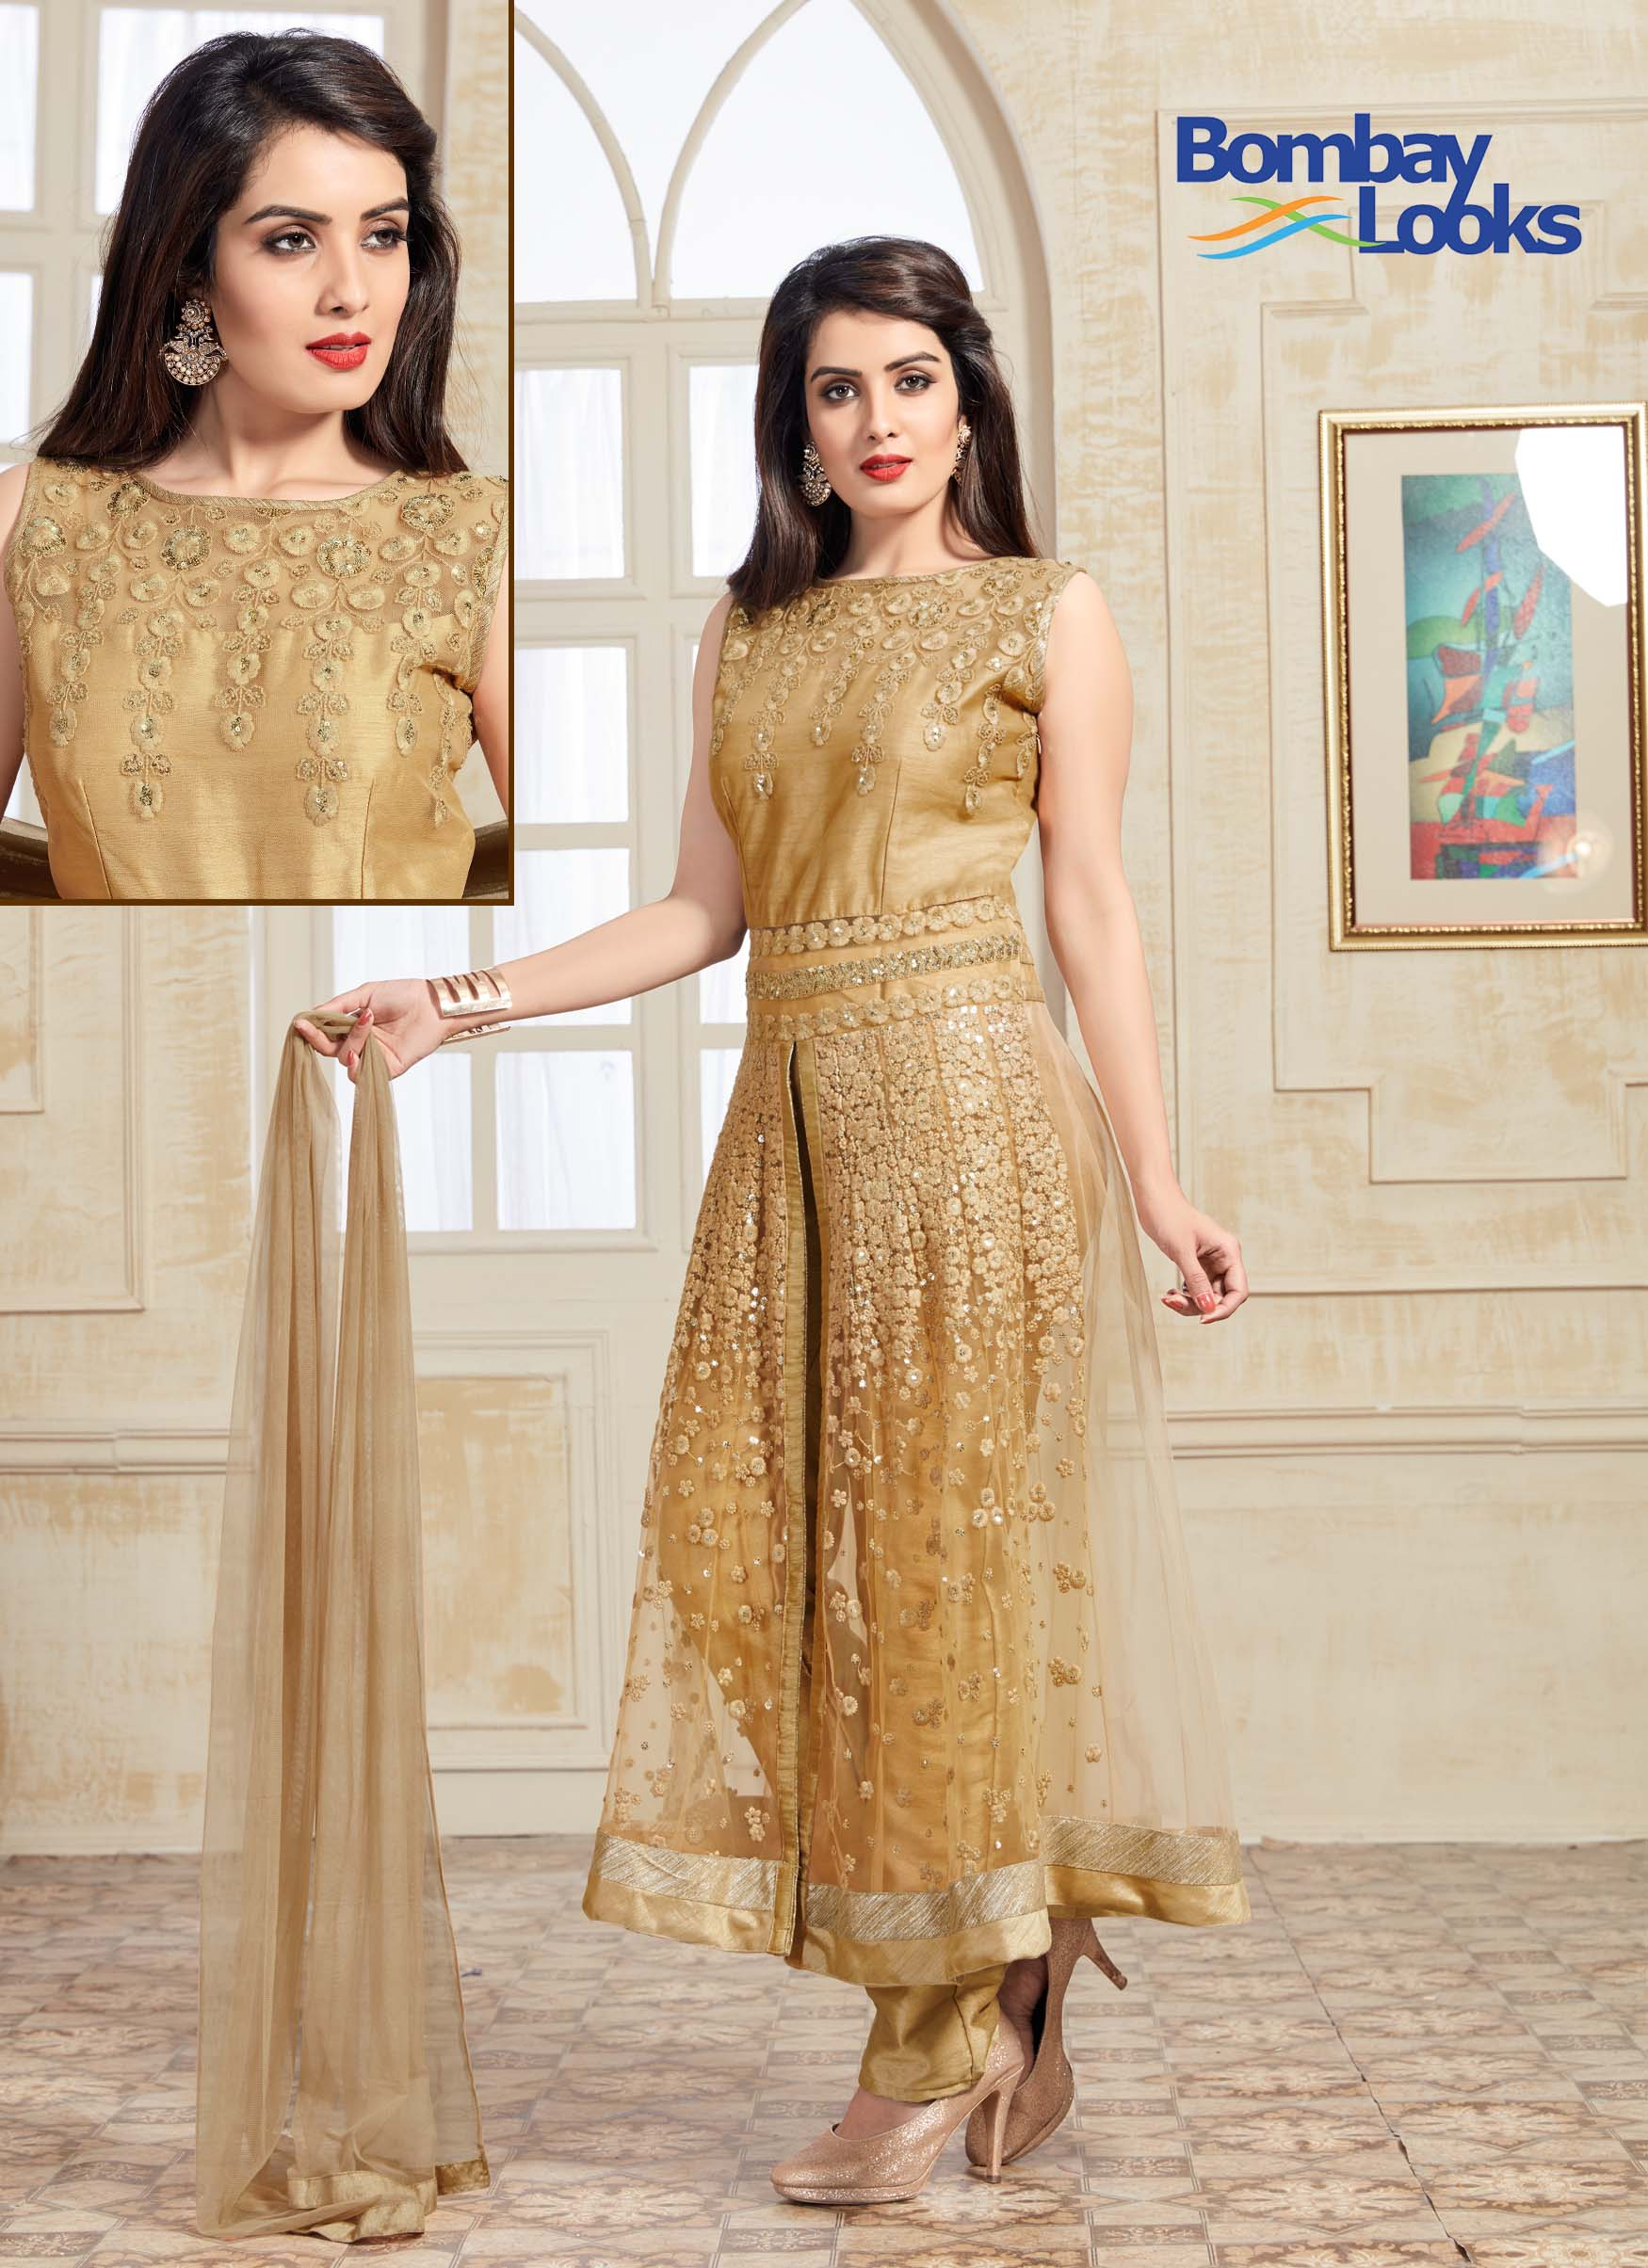 Luxurious golden dress suit with intricate golden thread embroidery all over